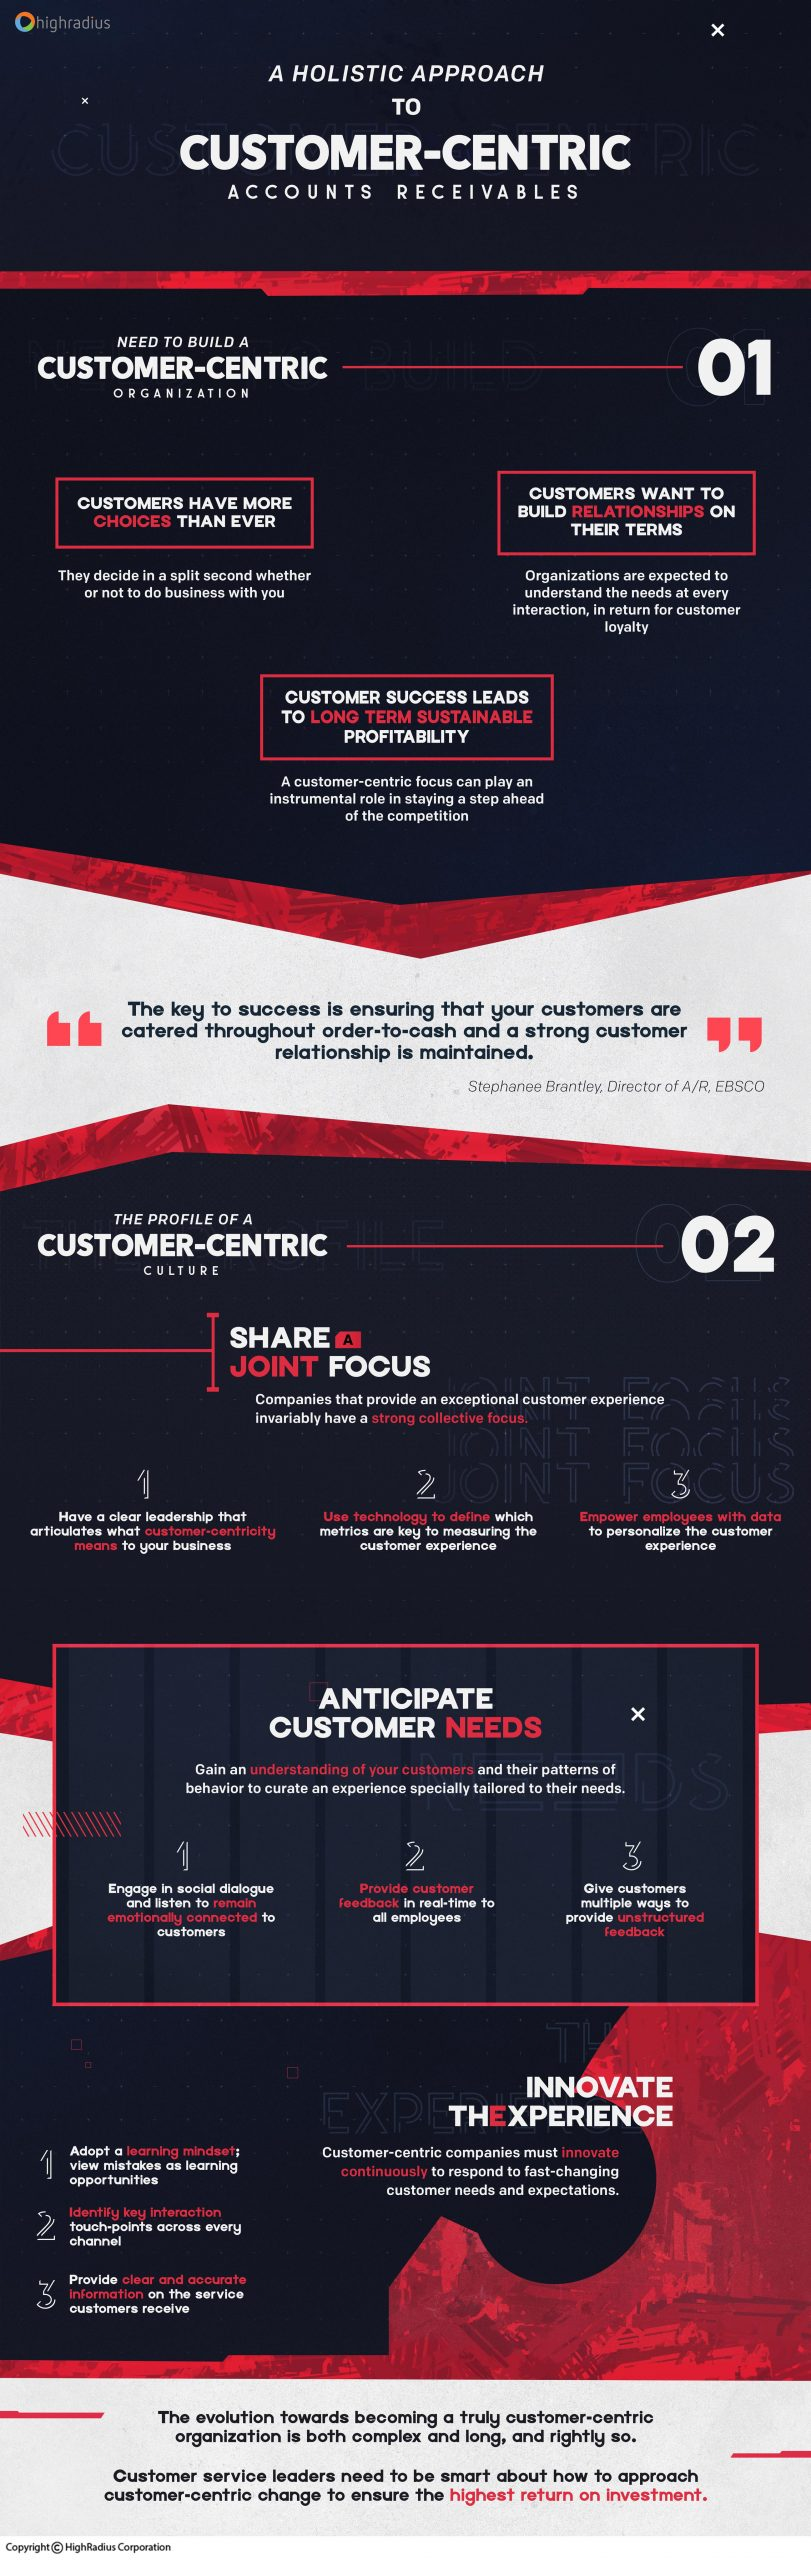 Customer-Centric Culture in Order to Cash